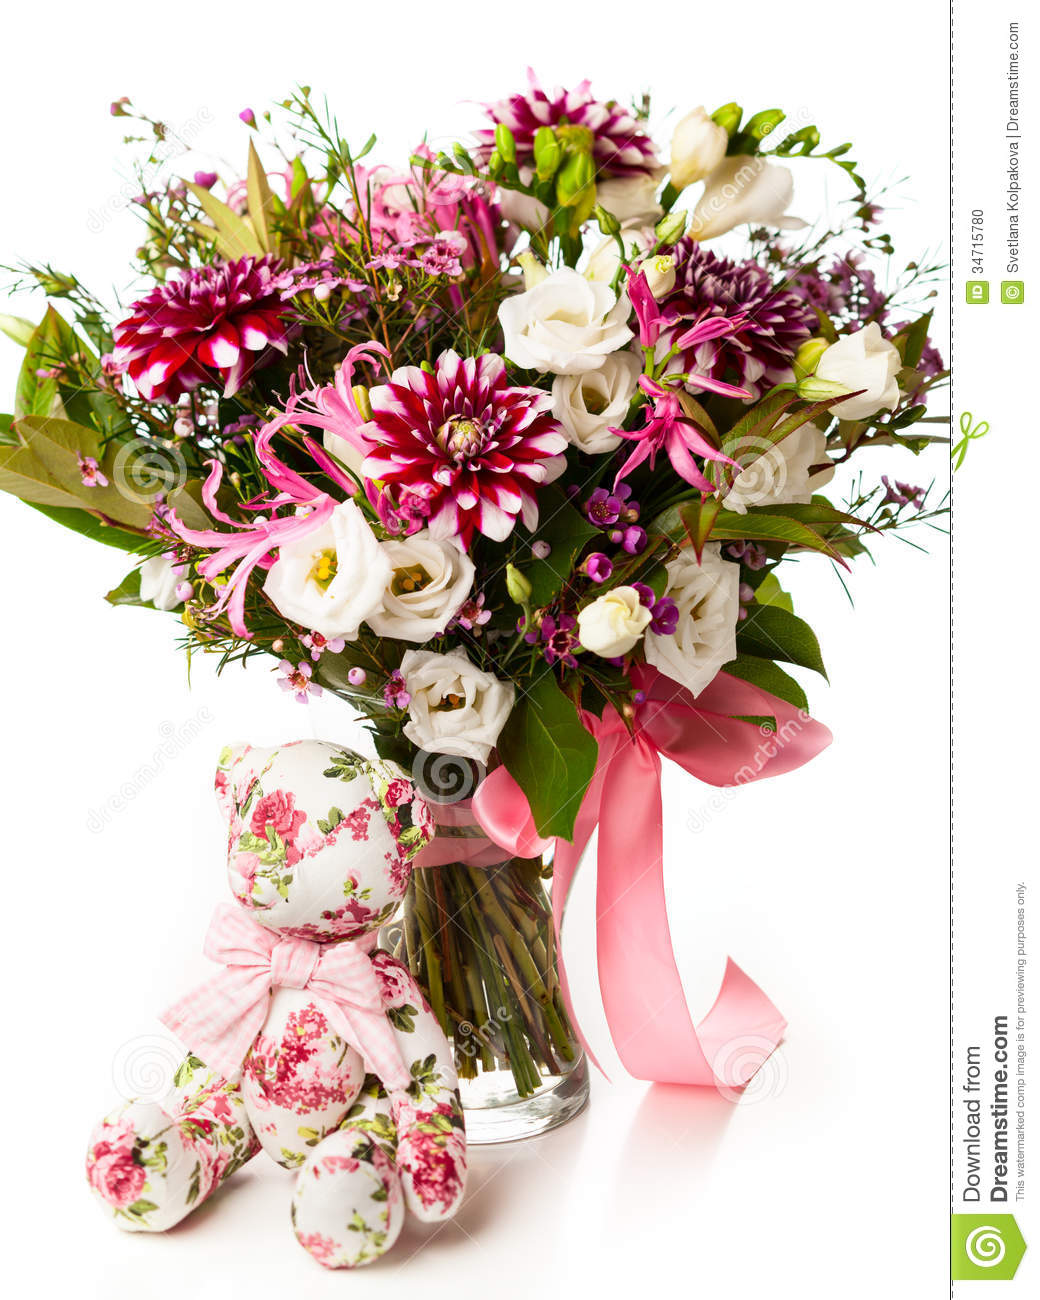 Bouquet of flowers stock photo image 34715780 for Picture of a bouquet of flowers